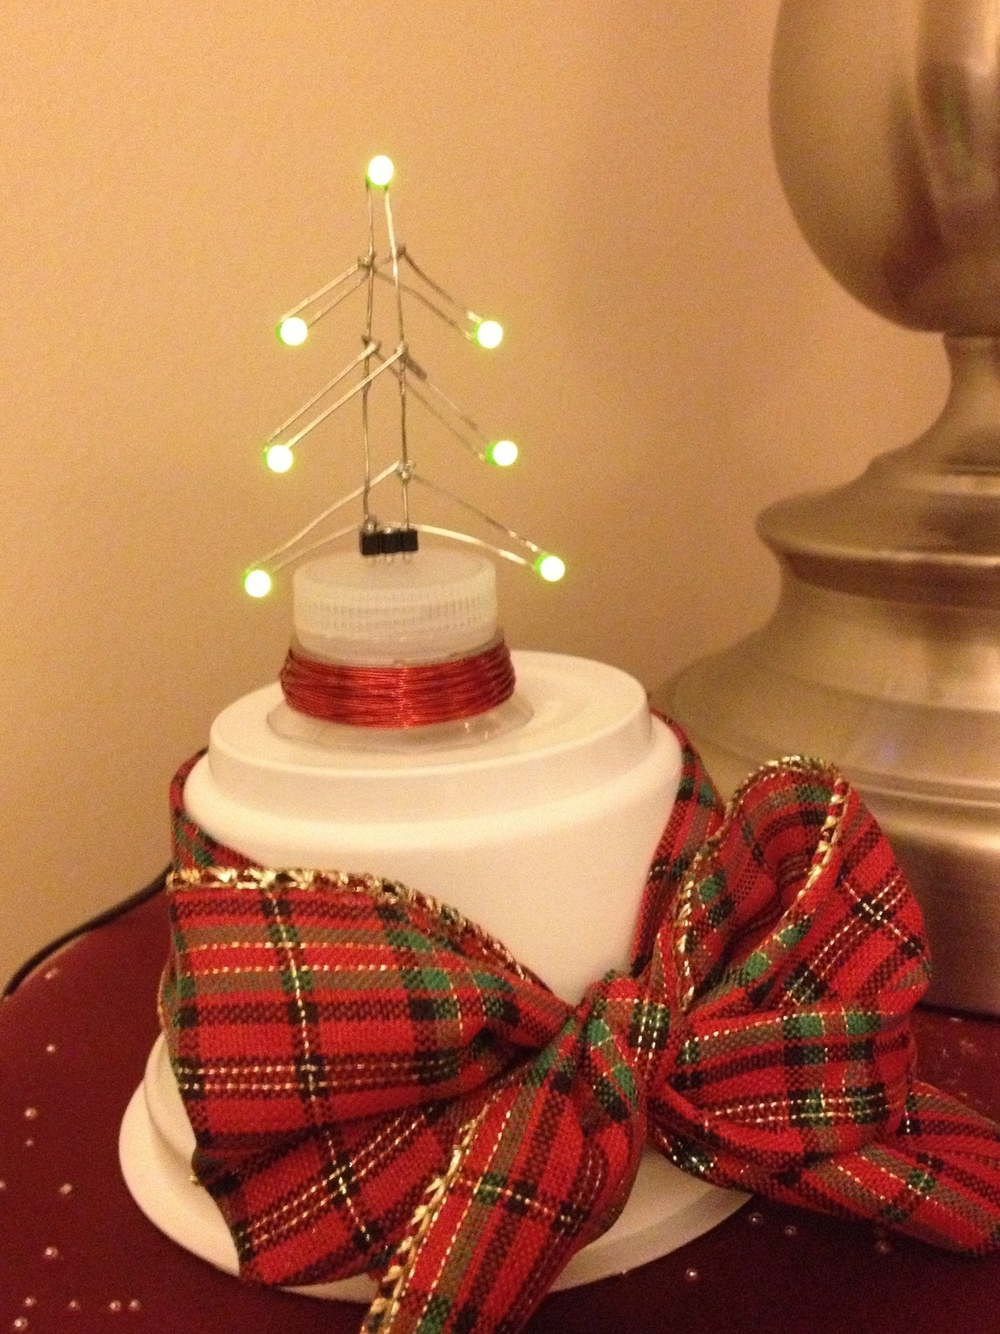 Wirelessly-powered LED Christmas tree